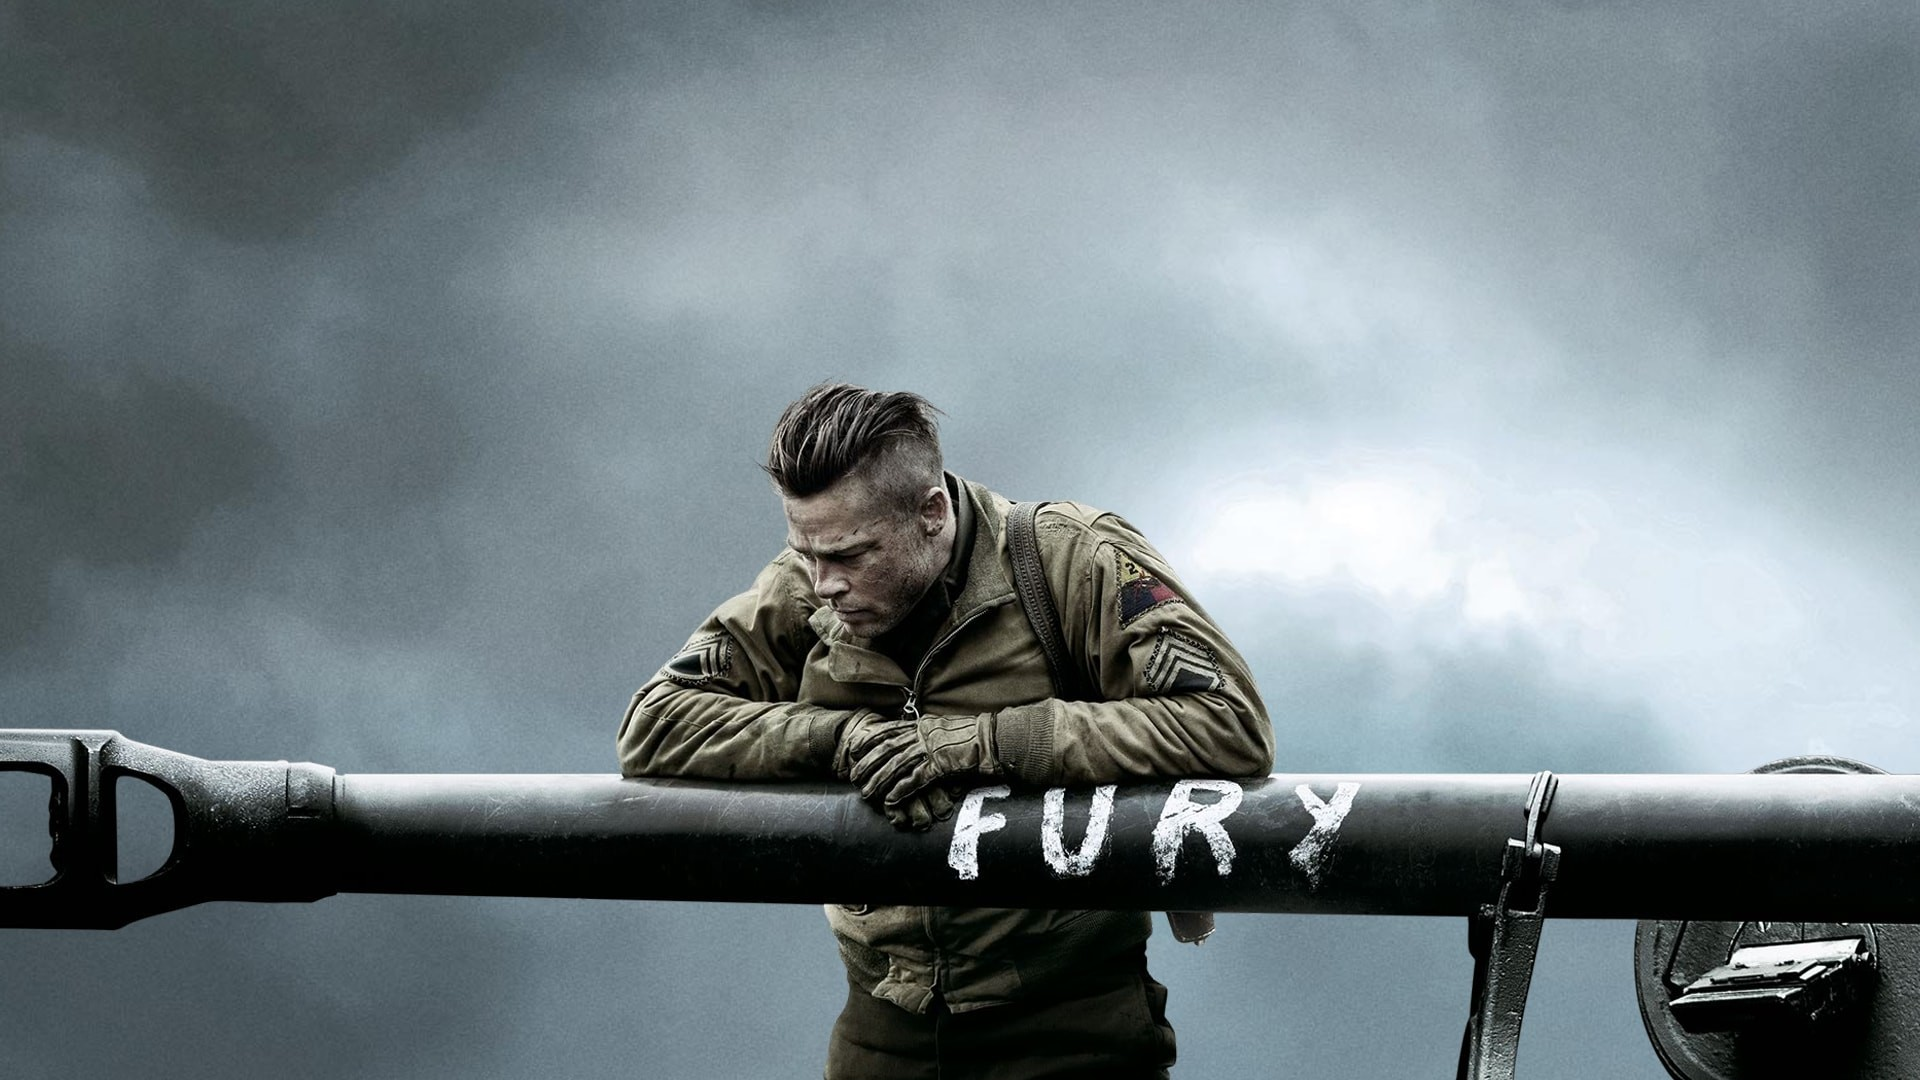 Fury Wallpapers Fury widescreen wallpapers